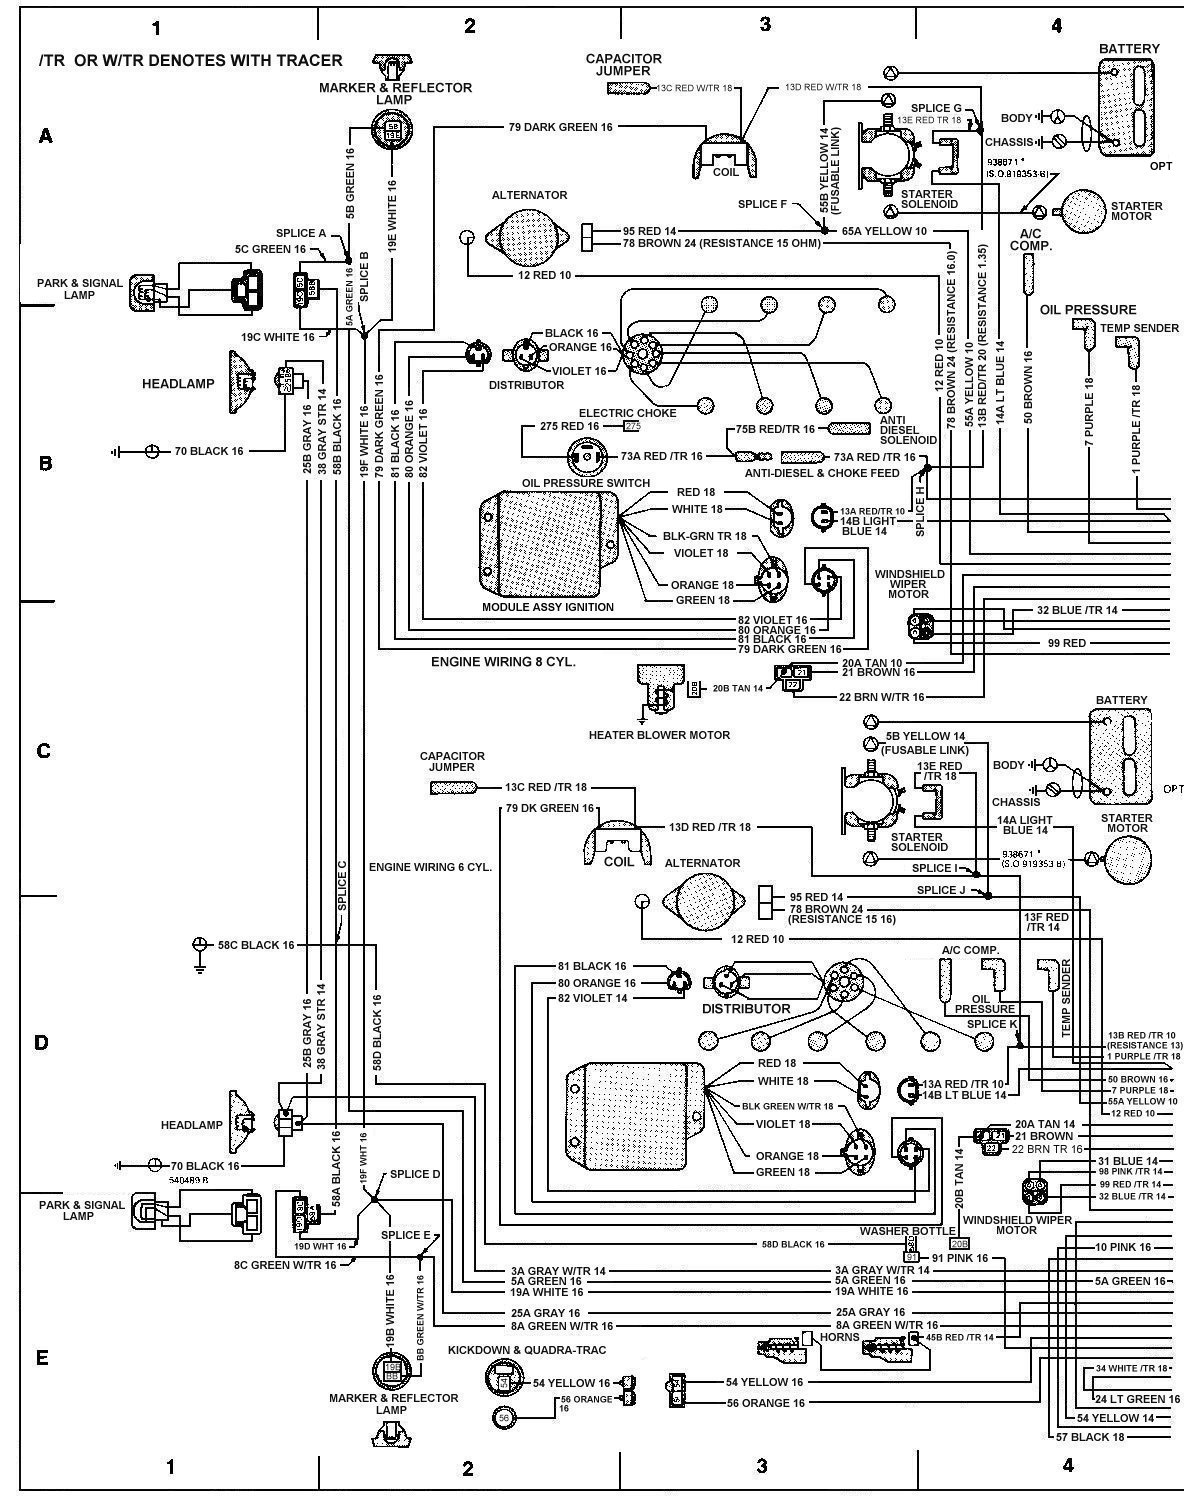 1982 Jeep J 20 Ignition Wiring Diagram Content Resource Of 79 Gmc Starter Wire J20 Detailed Schematics Rh Lelandlutheran Com Cj5 93